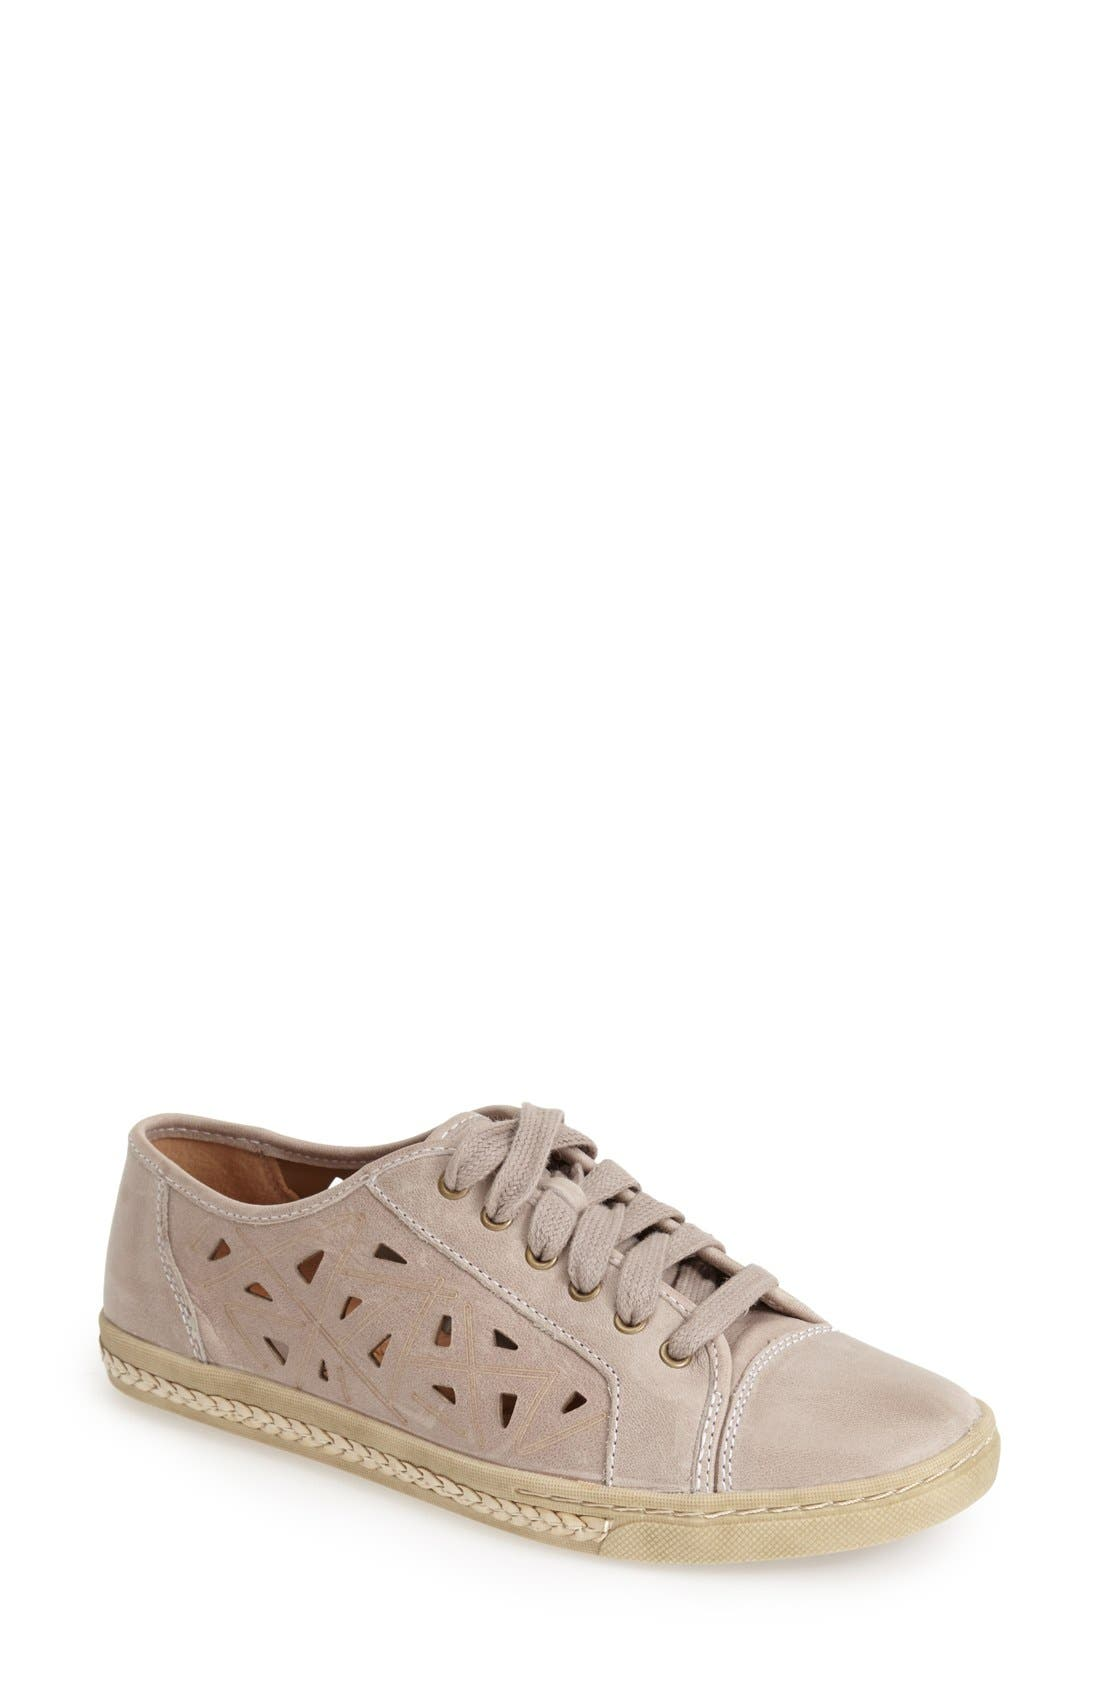 Alternate Image 1 Selected - Earth 'Pomelo' Perforated Leather Sneaker (Women)